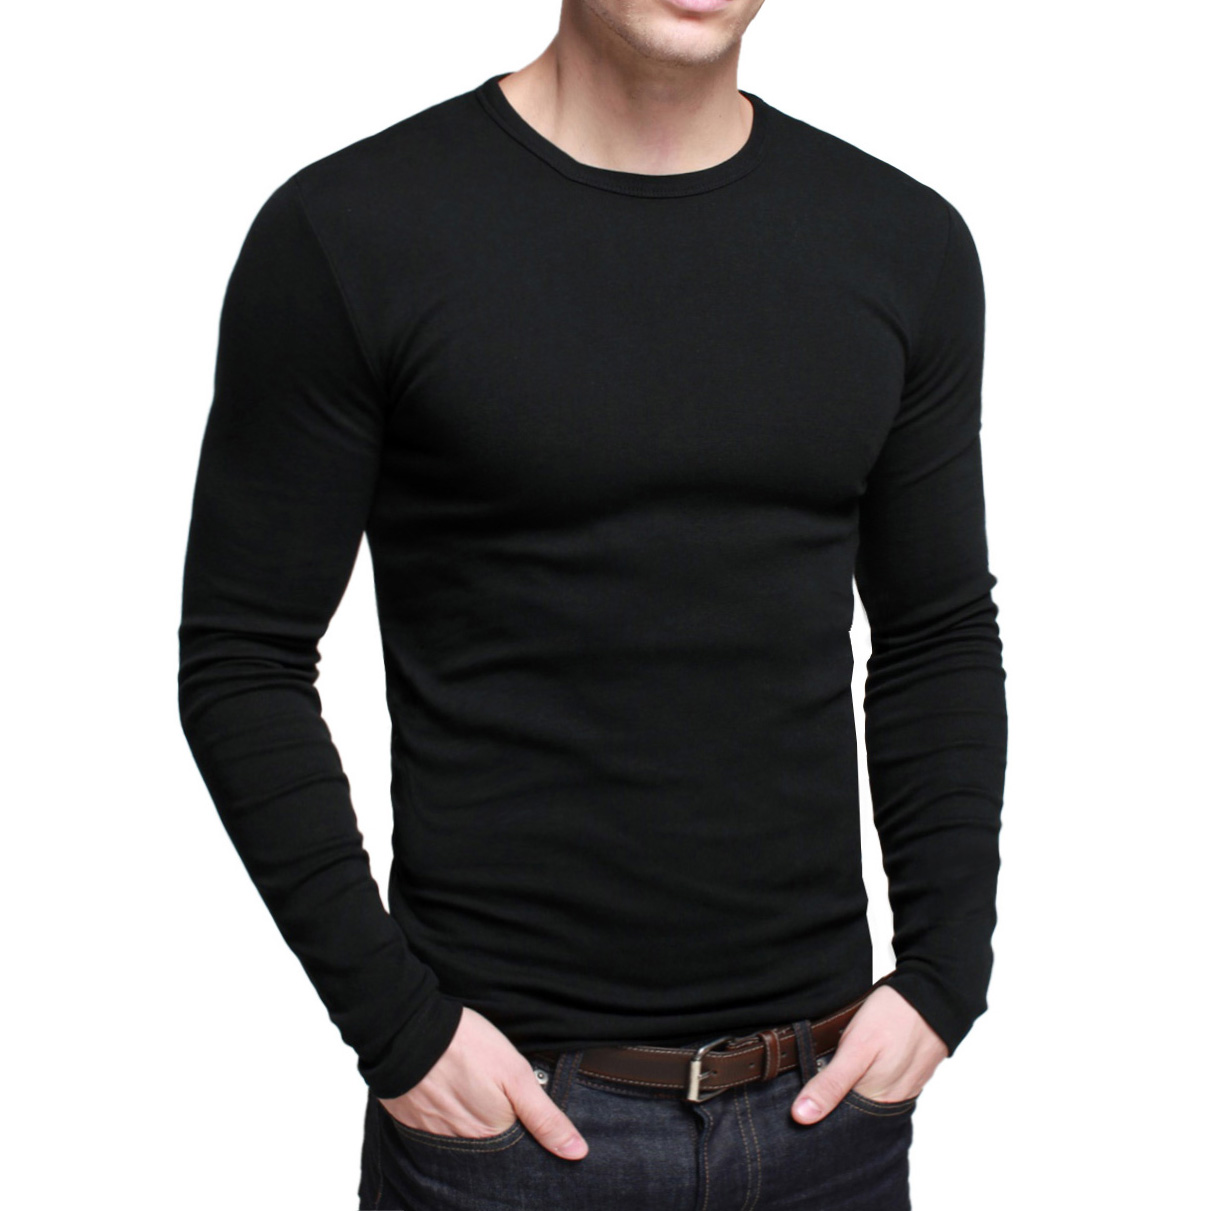 Hanes Long Sleeve T Shirt % Cotton Adult Beefy Tee Thicky Heavy S-3XL See more like this PROCLUB PRO CLUB MENS CASUAL LONG SLEEVE T .